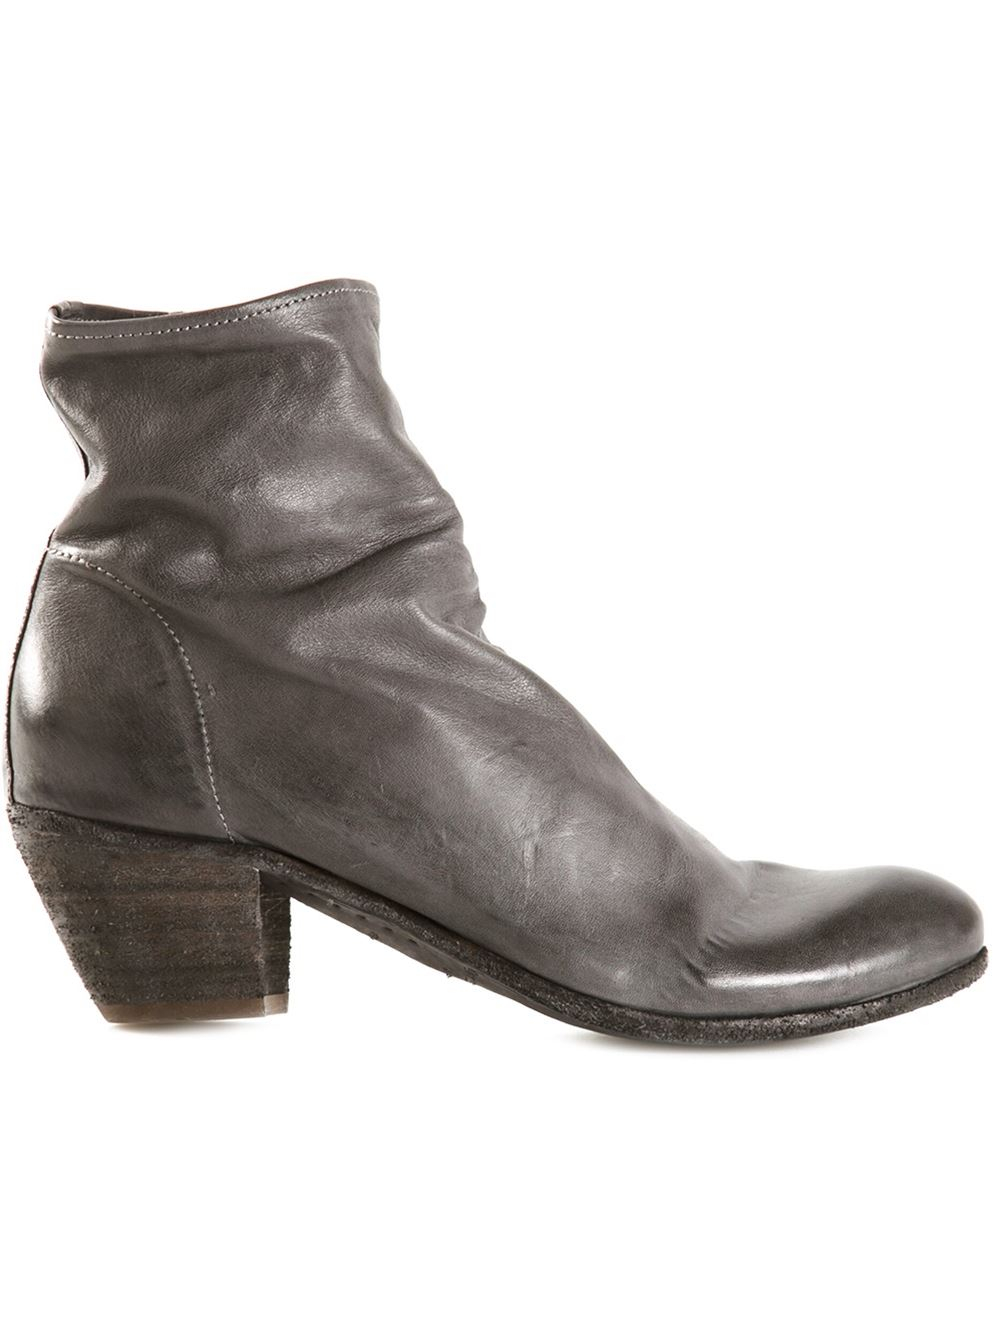 Awesome Officine Creative Hubble Boots In Brown | Lyst